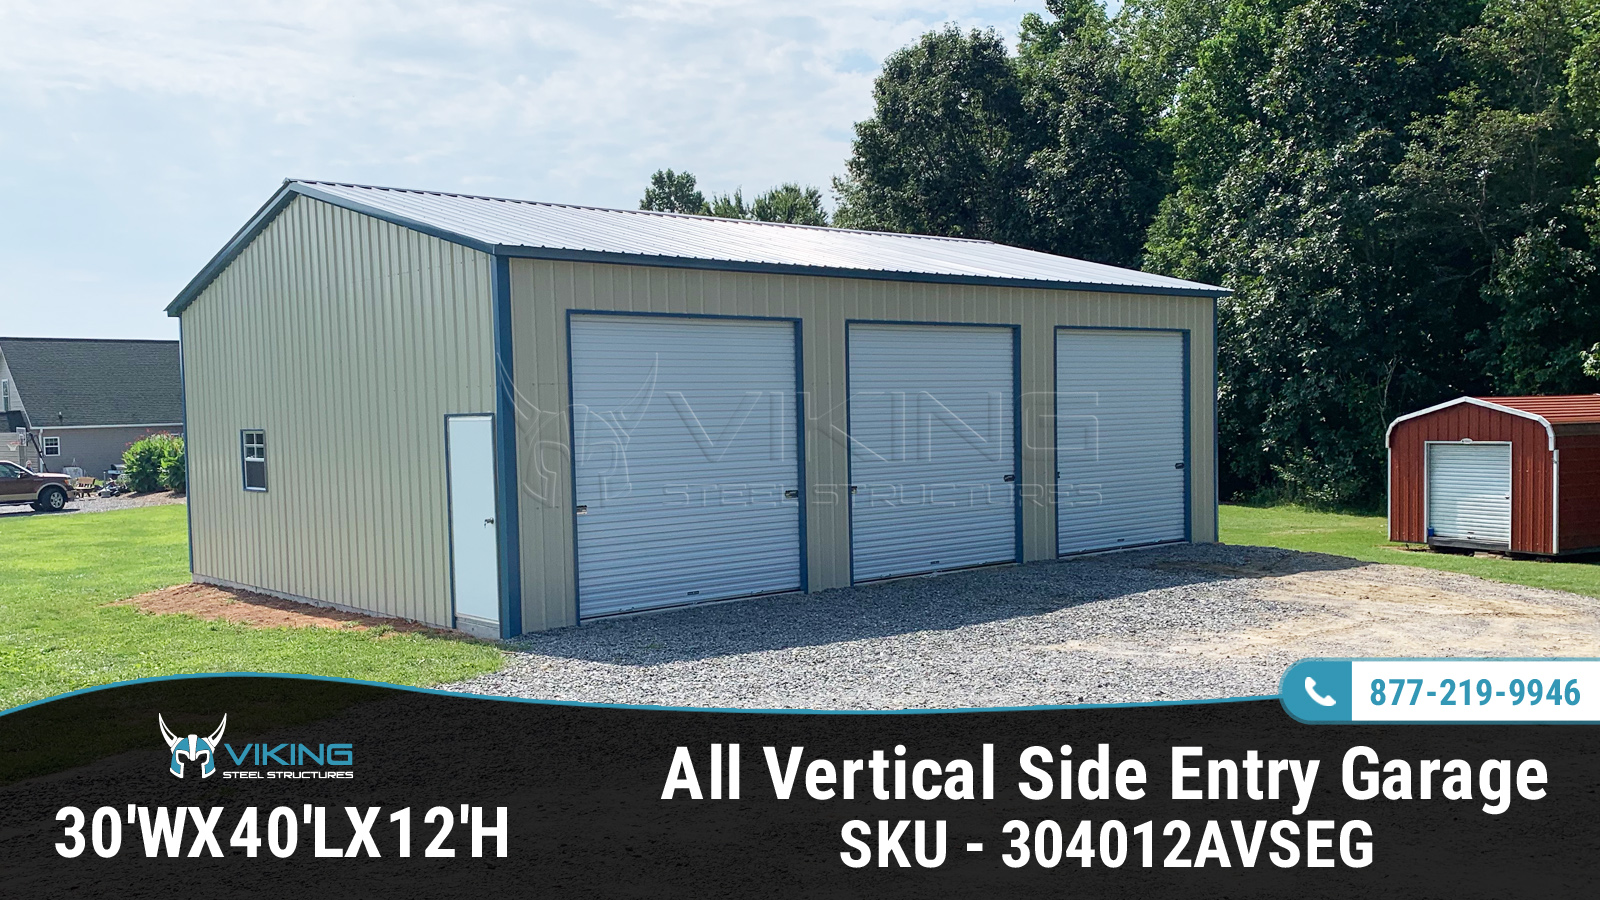 30'x40'x12' All Vertical Side Entry Garage